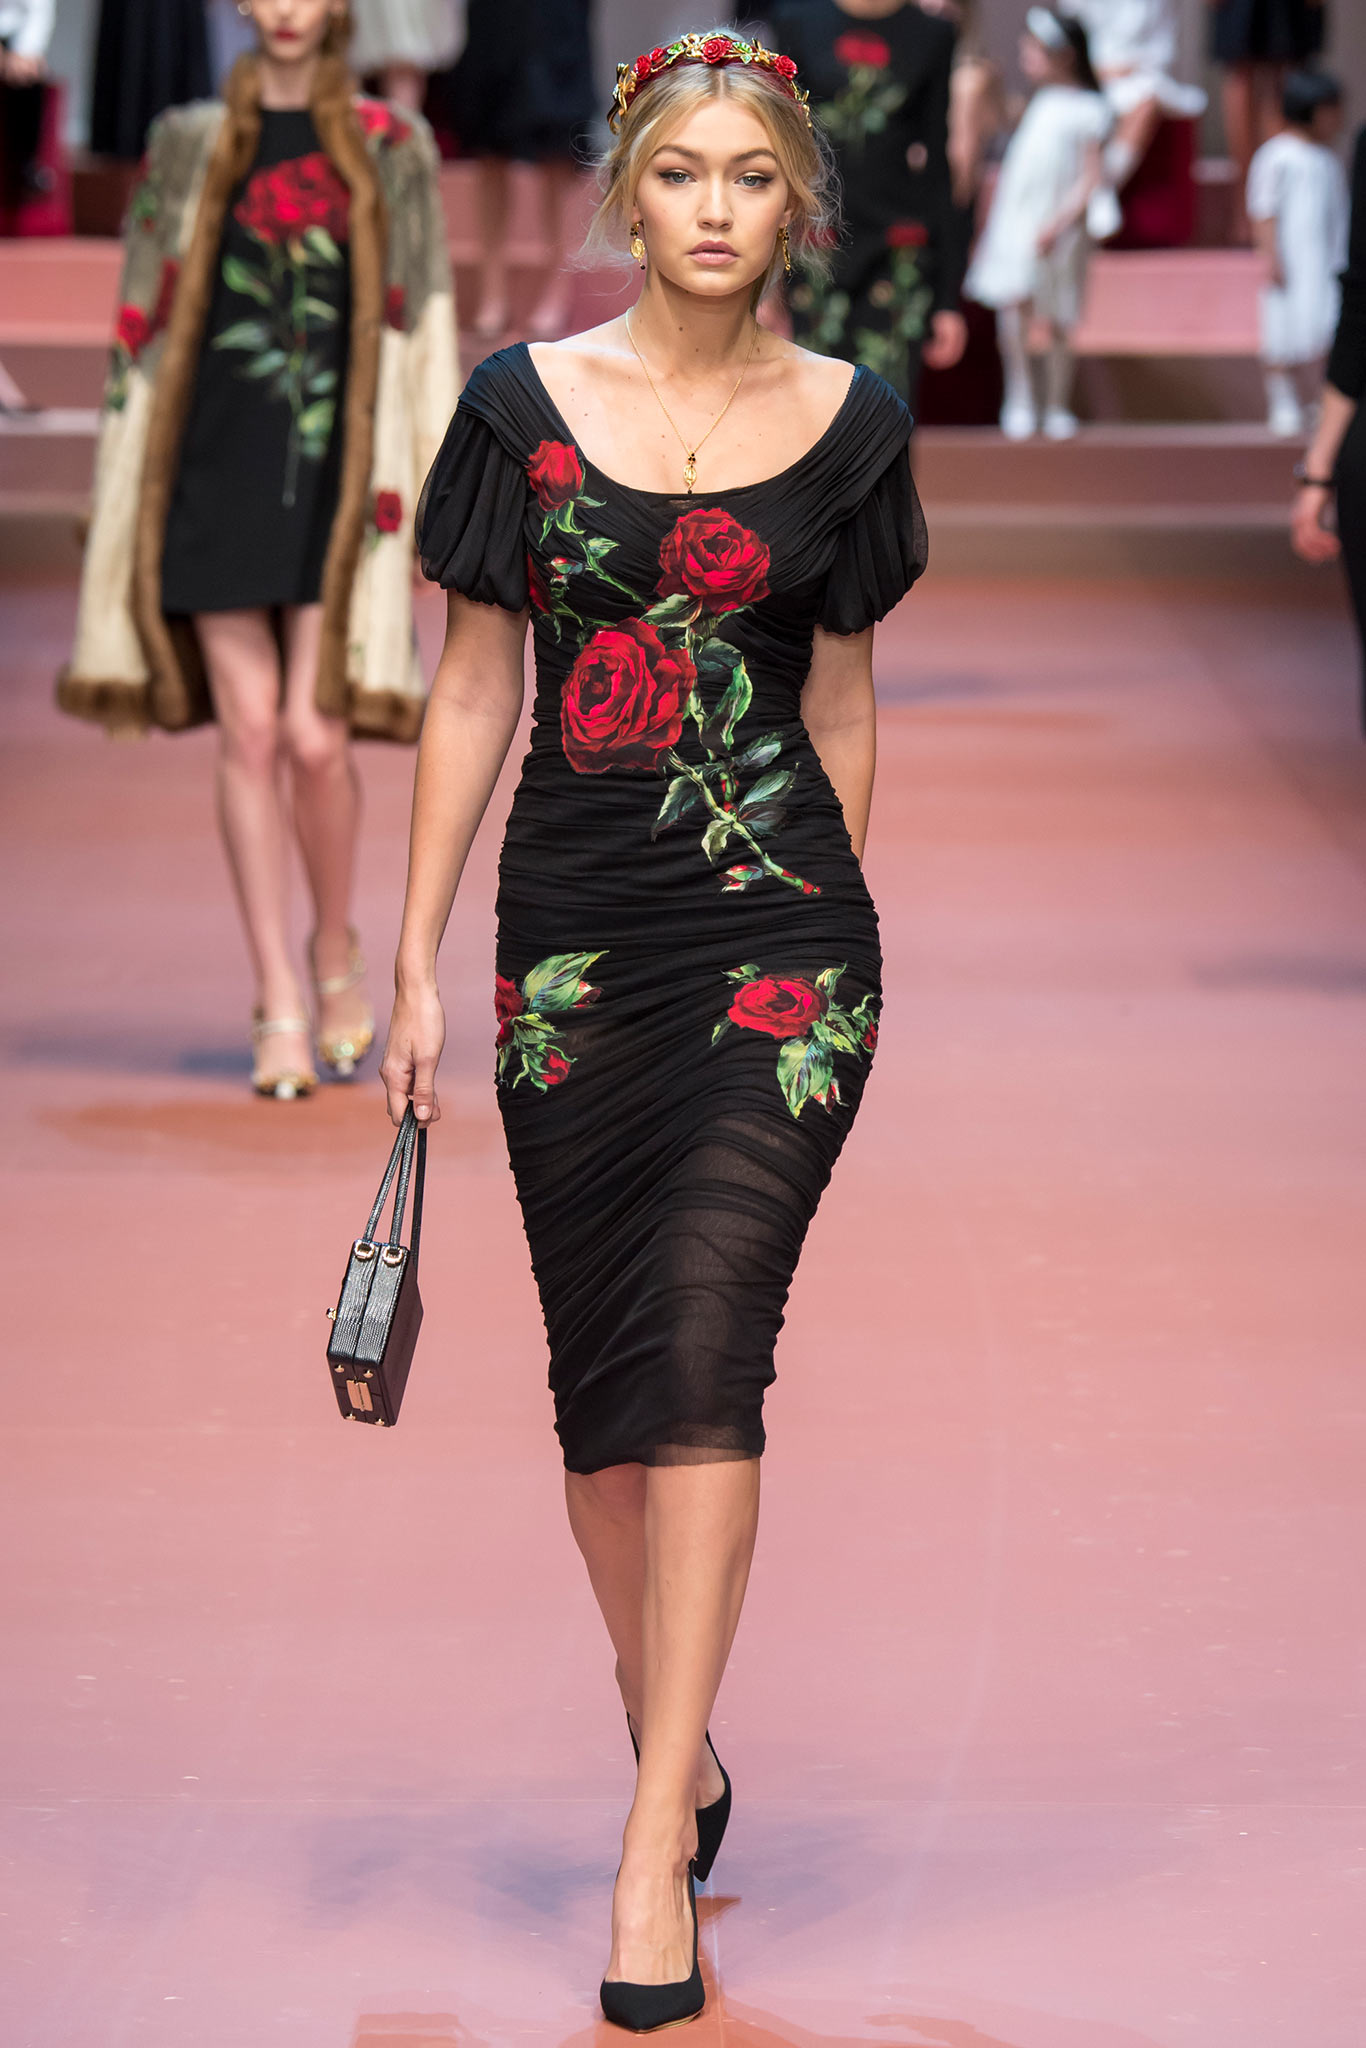 Gigi hadid dolce and gabbana fashion show 2015 02 gotceleb Style me pink fashion show